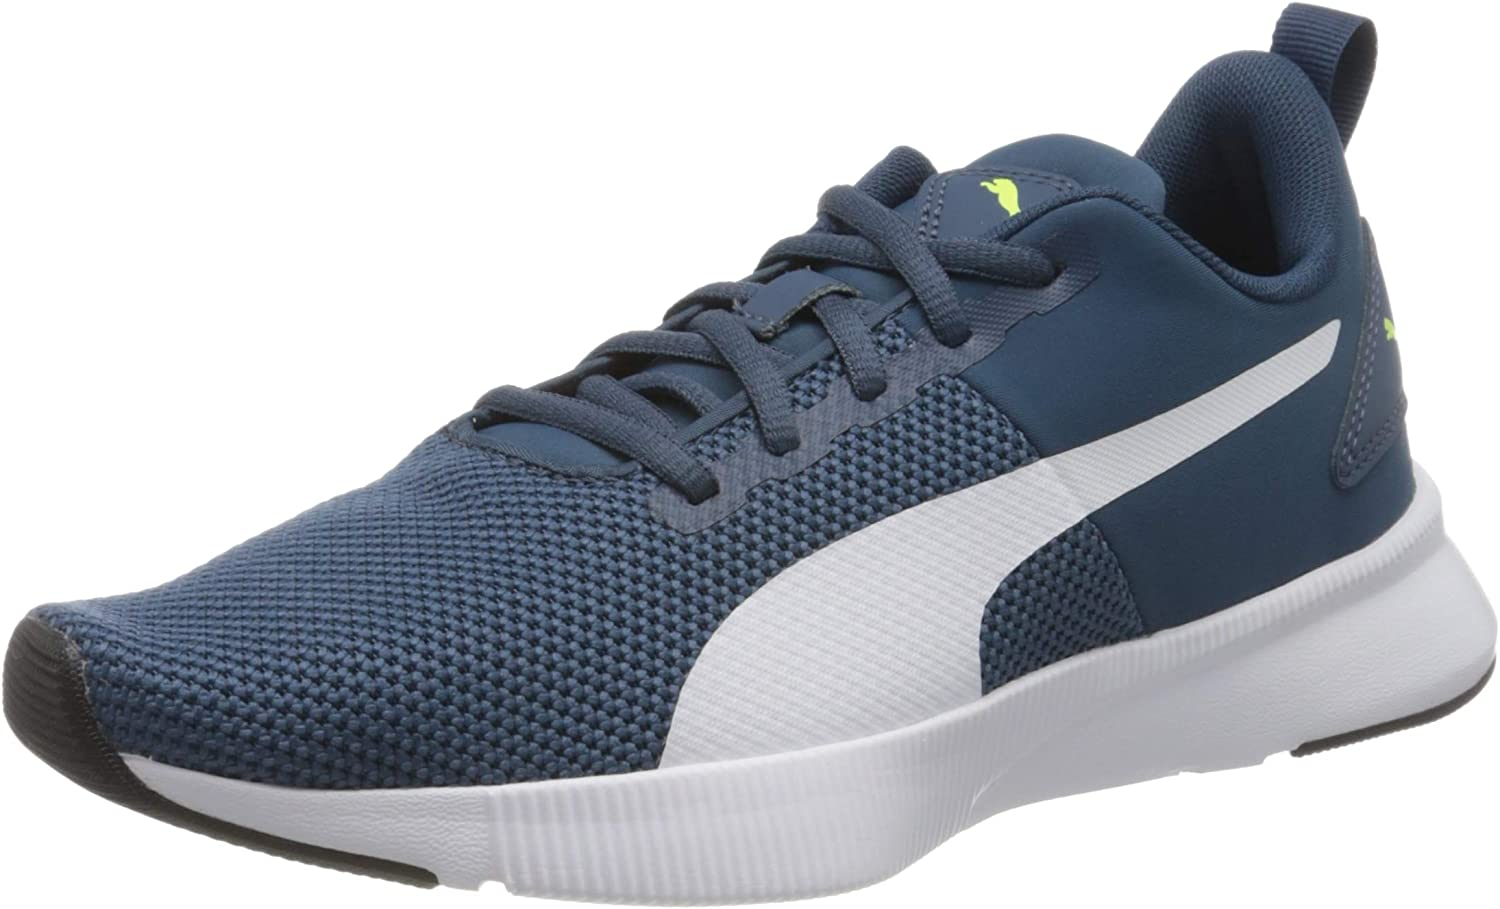 PUMA Flyer Runner, Zapatillas de Running Unisex Adulto: Amazon.es: Zapatos y complementos